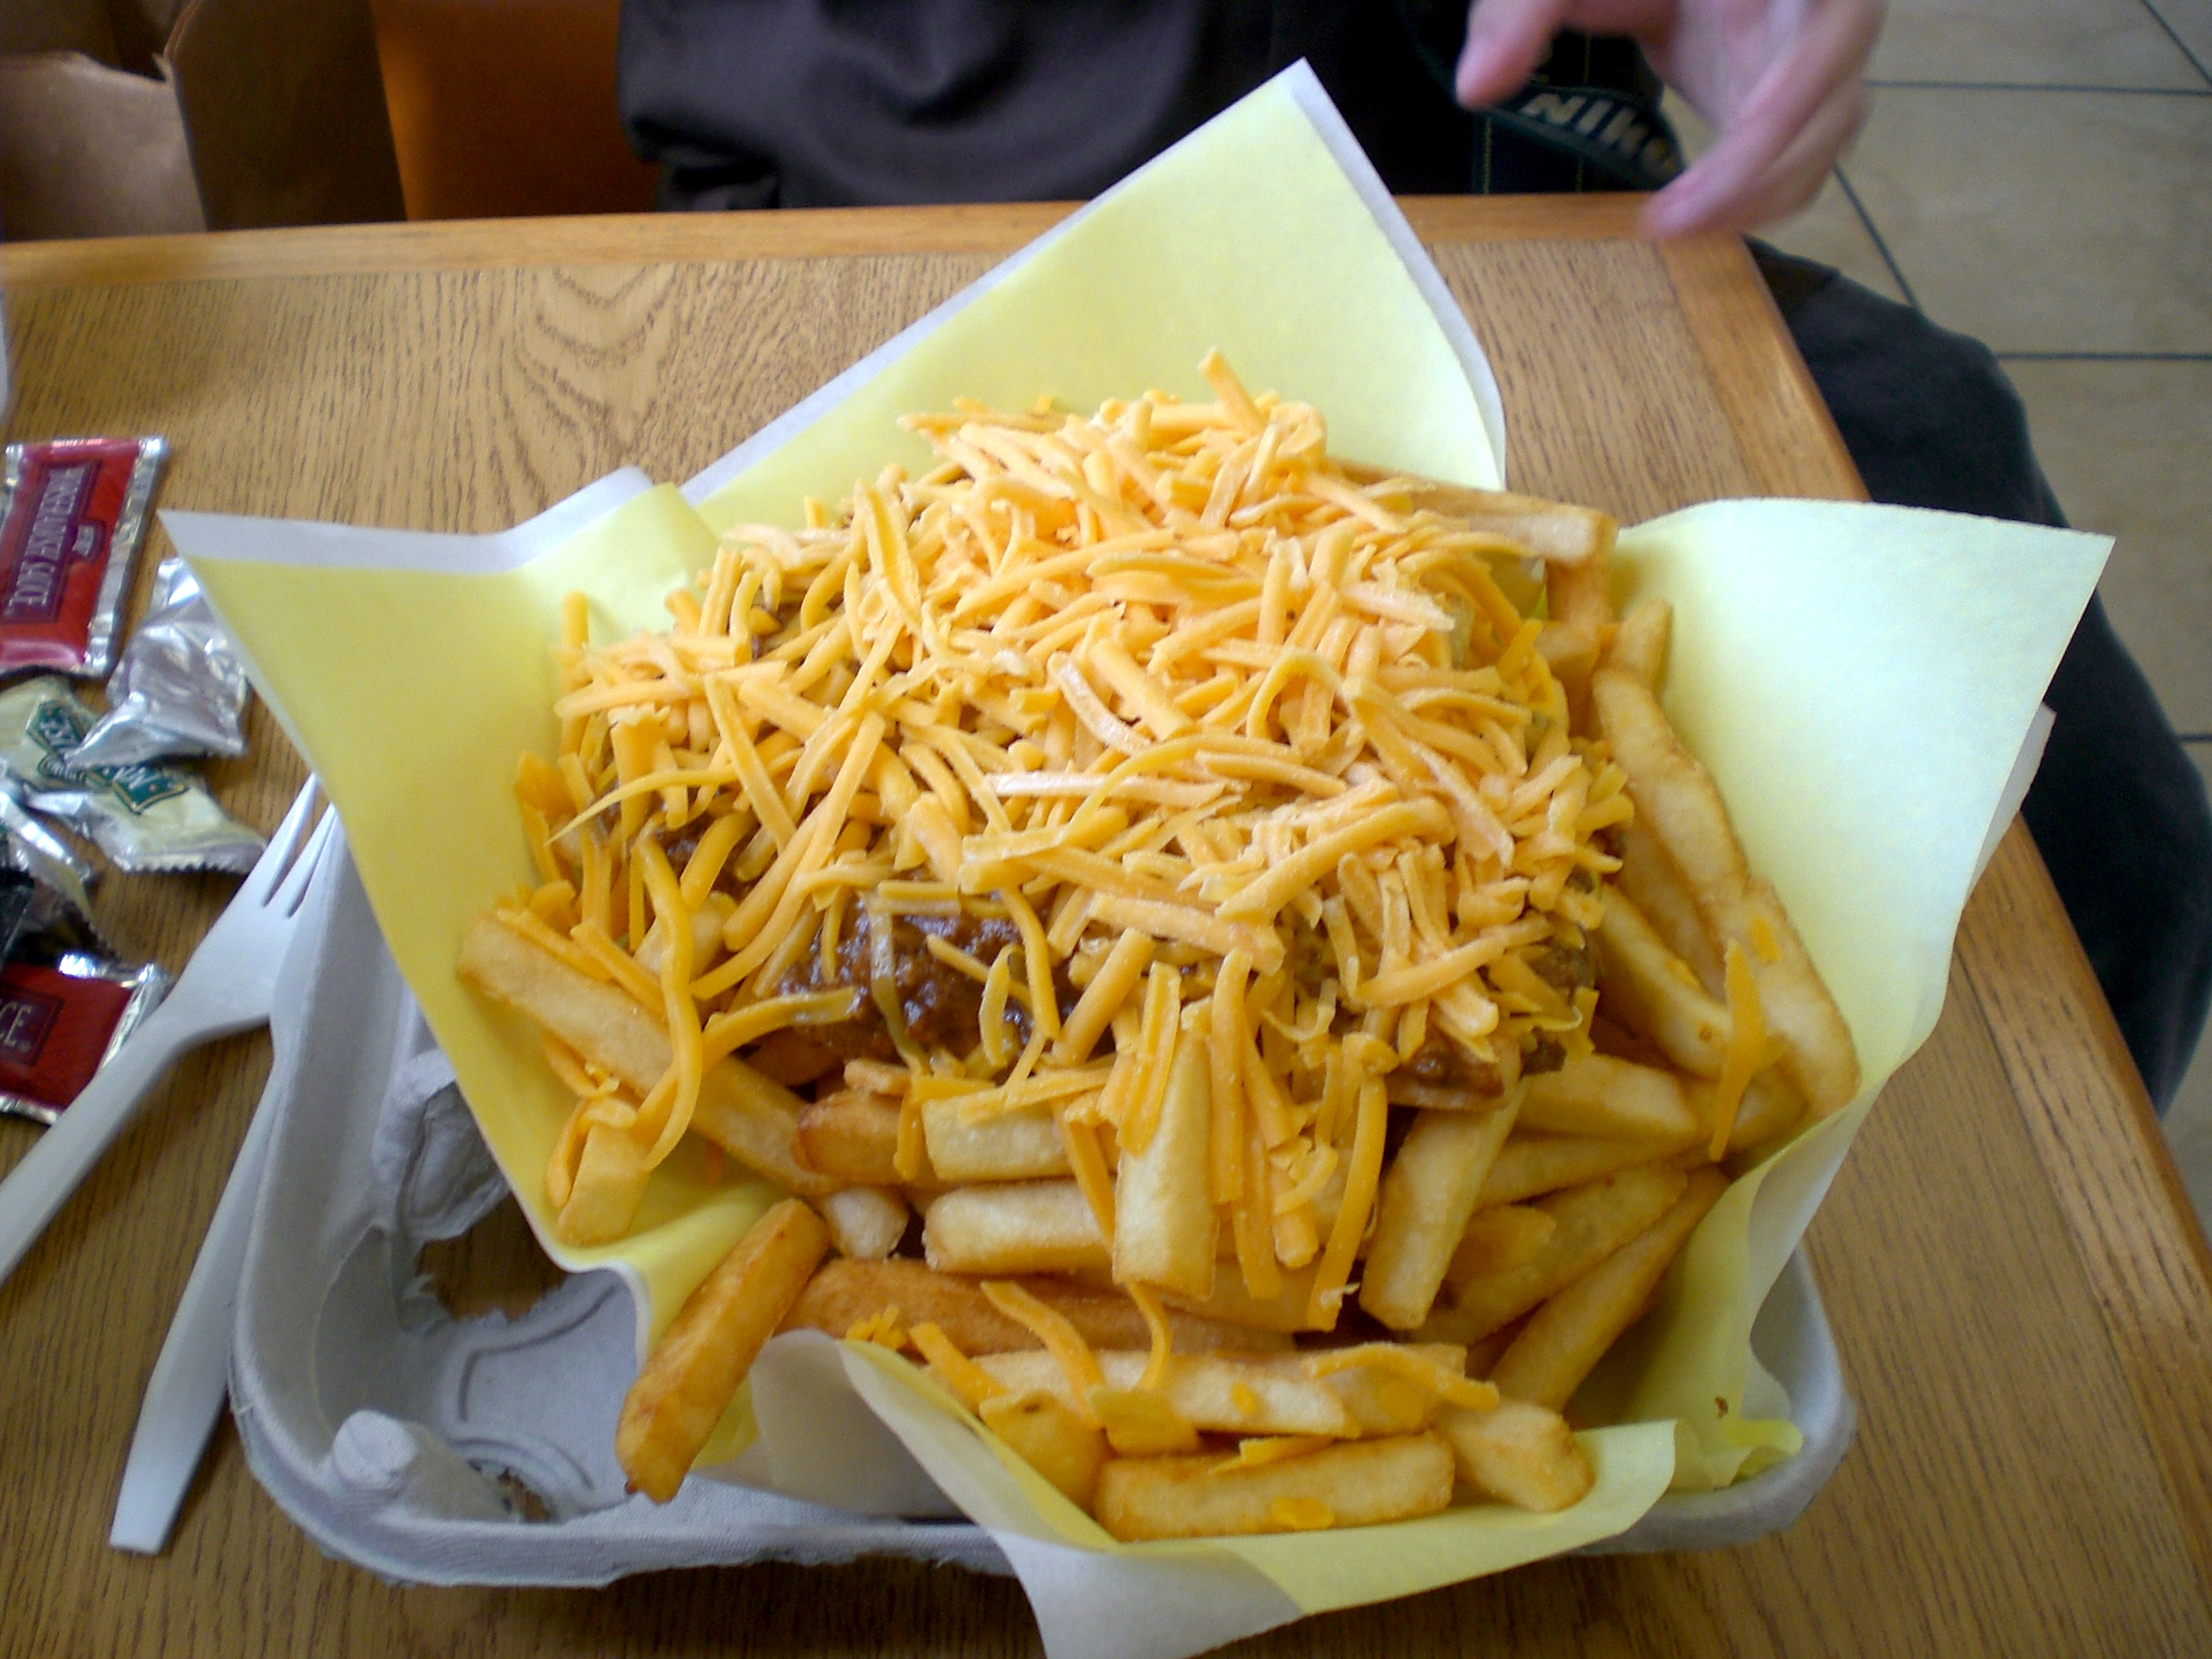 recipe: places that sell chili cheese fries near me [39]